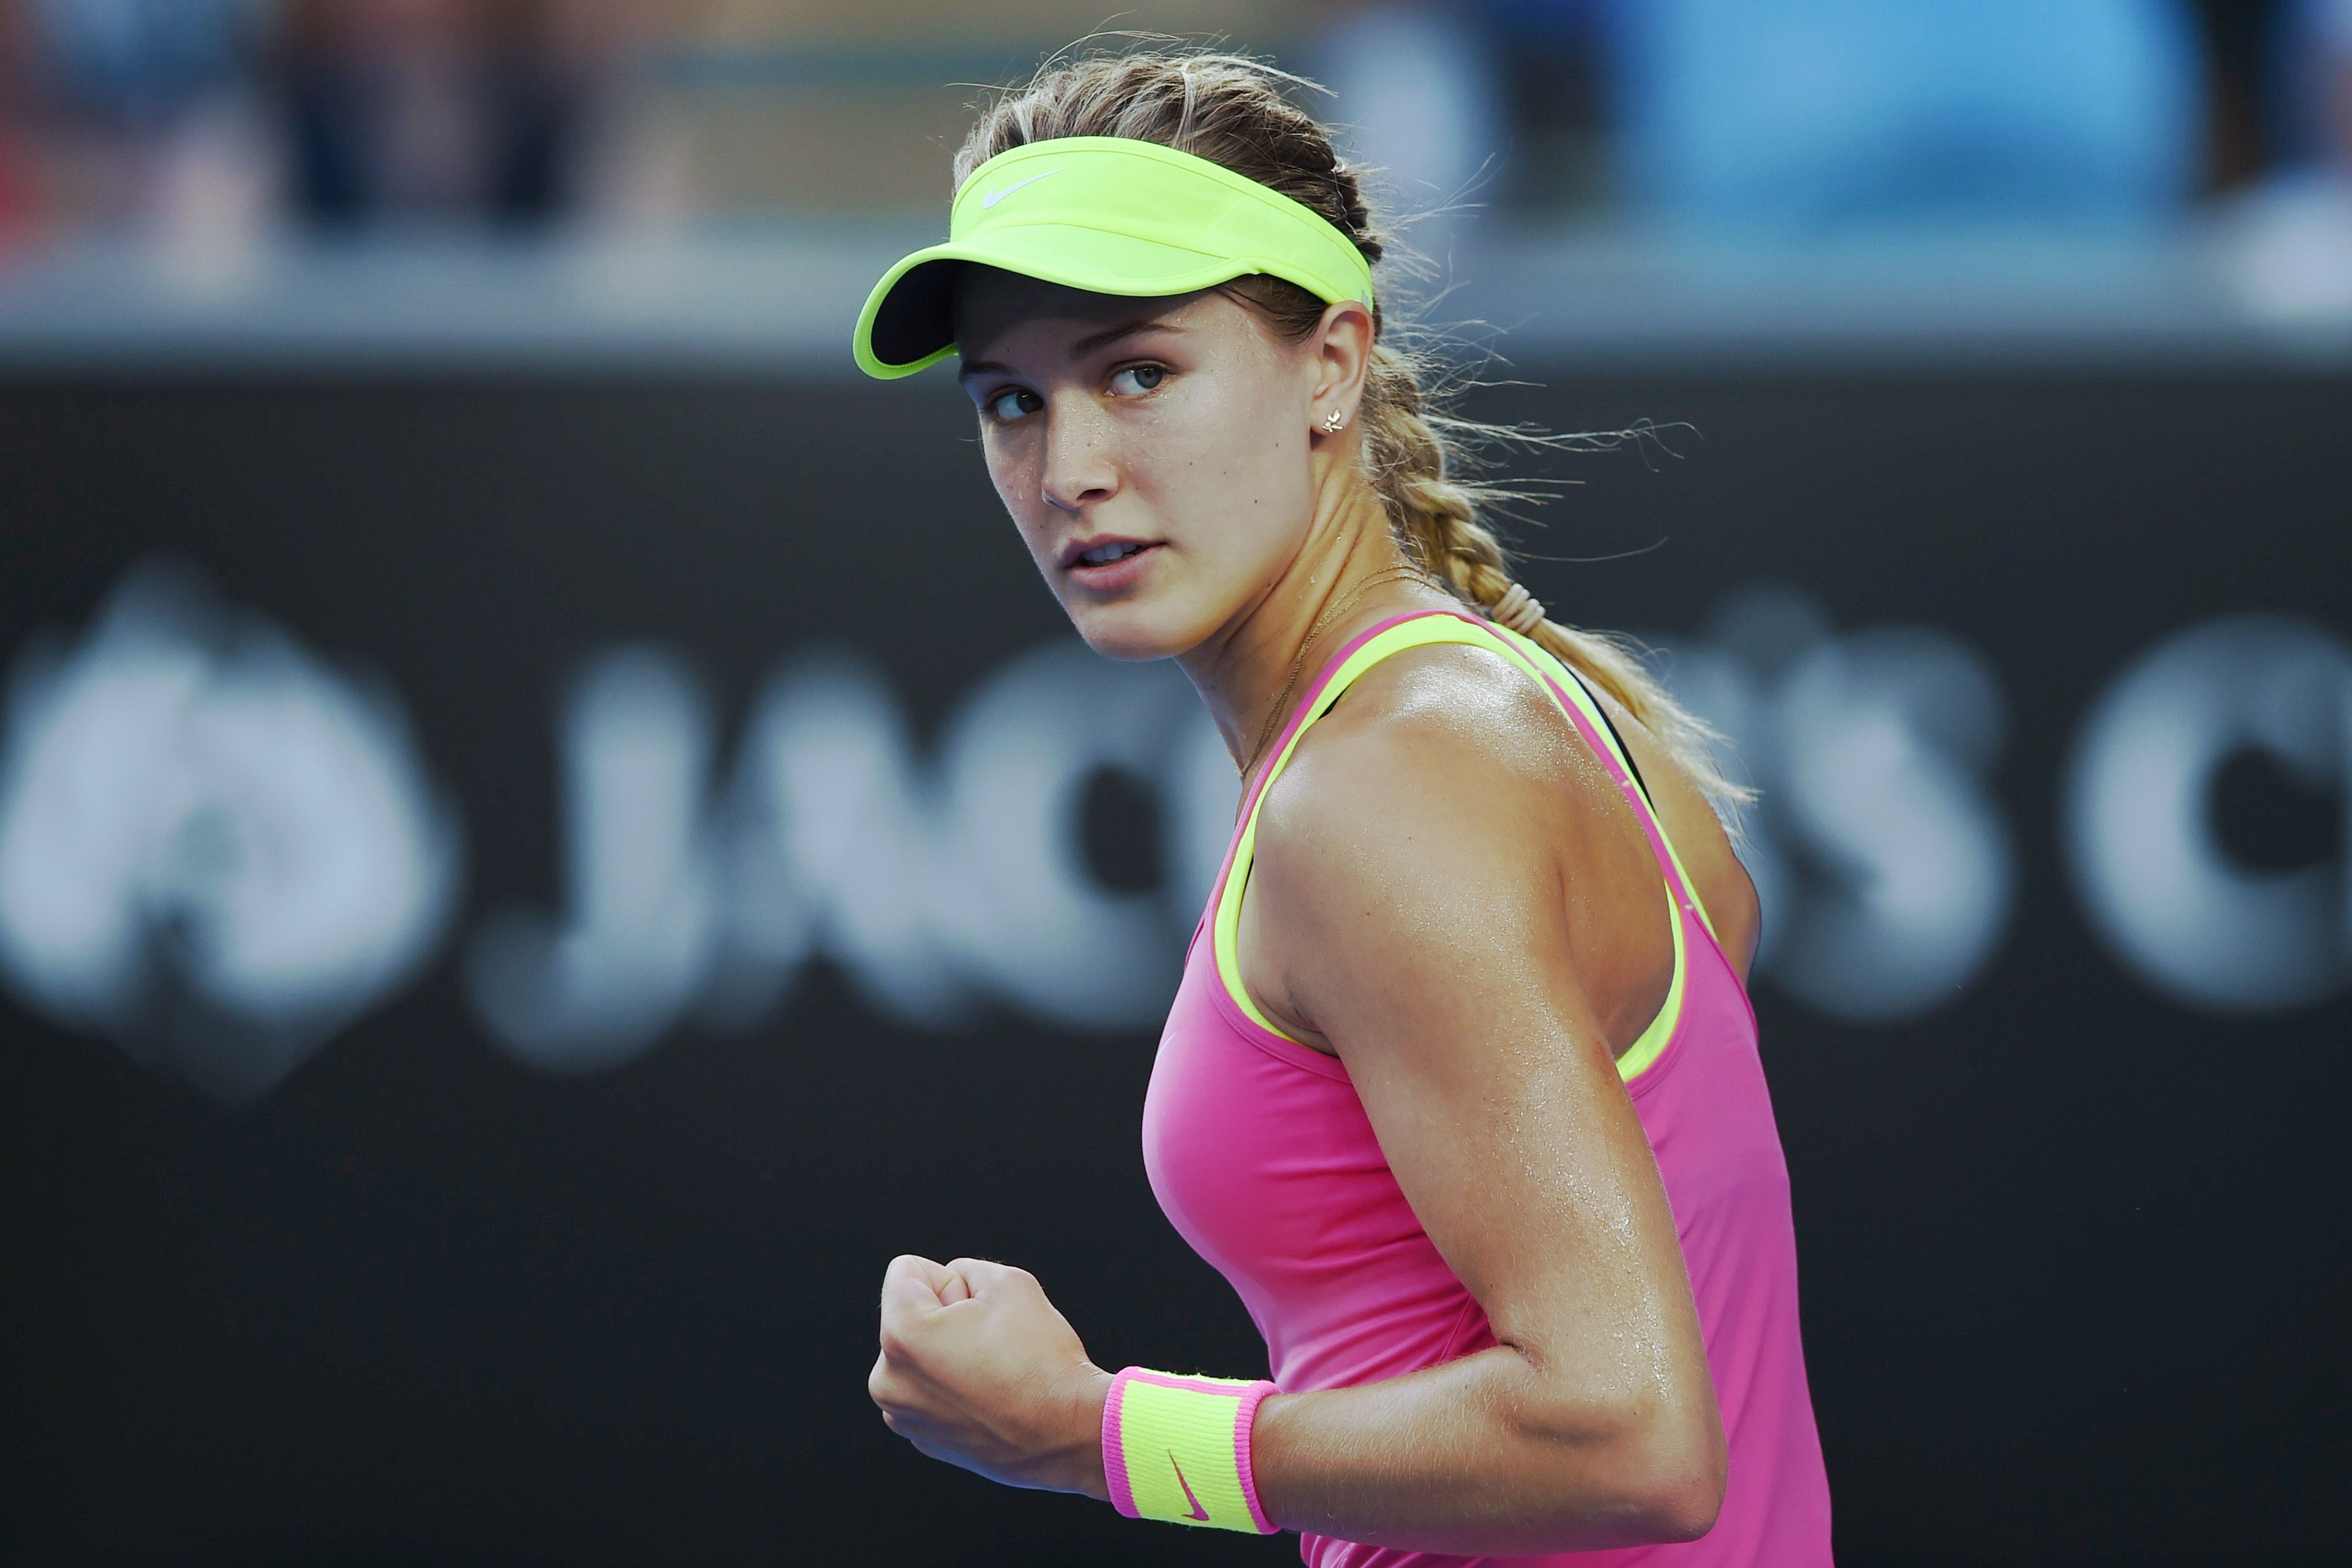 Eugenie Bouchard Twirl At Australia Open Sparks Tennis Sexism